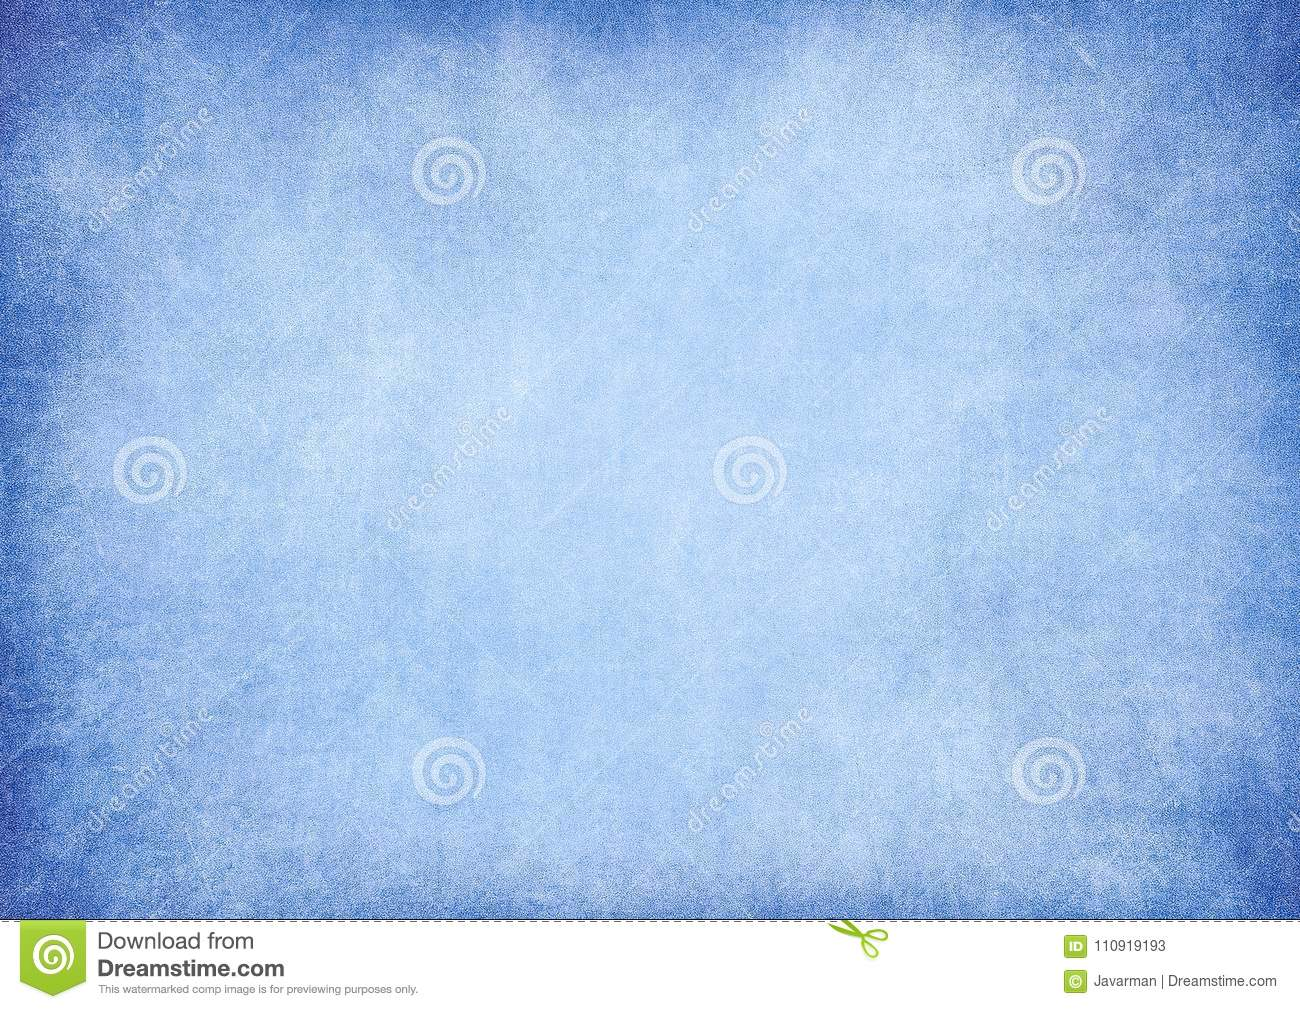 Grunge Texture. Nice High Resolution Background. Stock